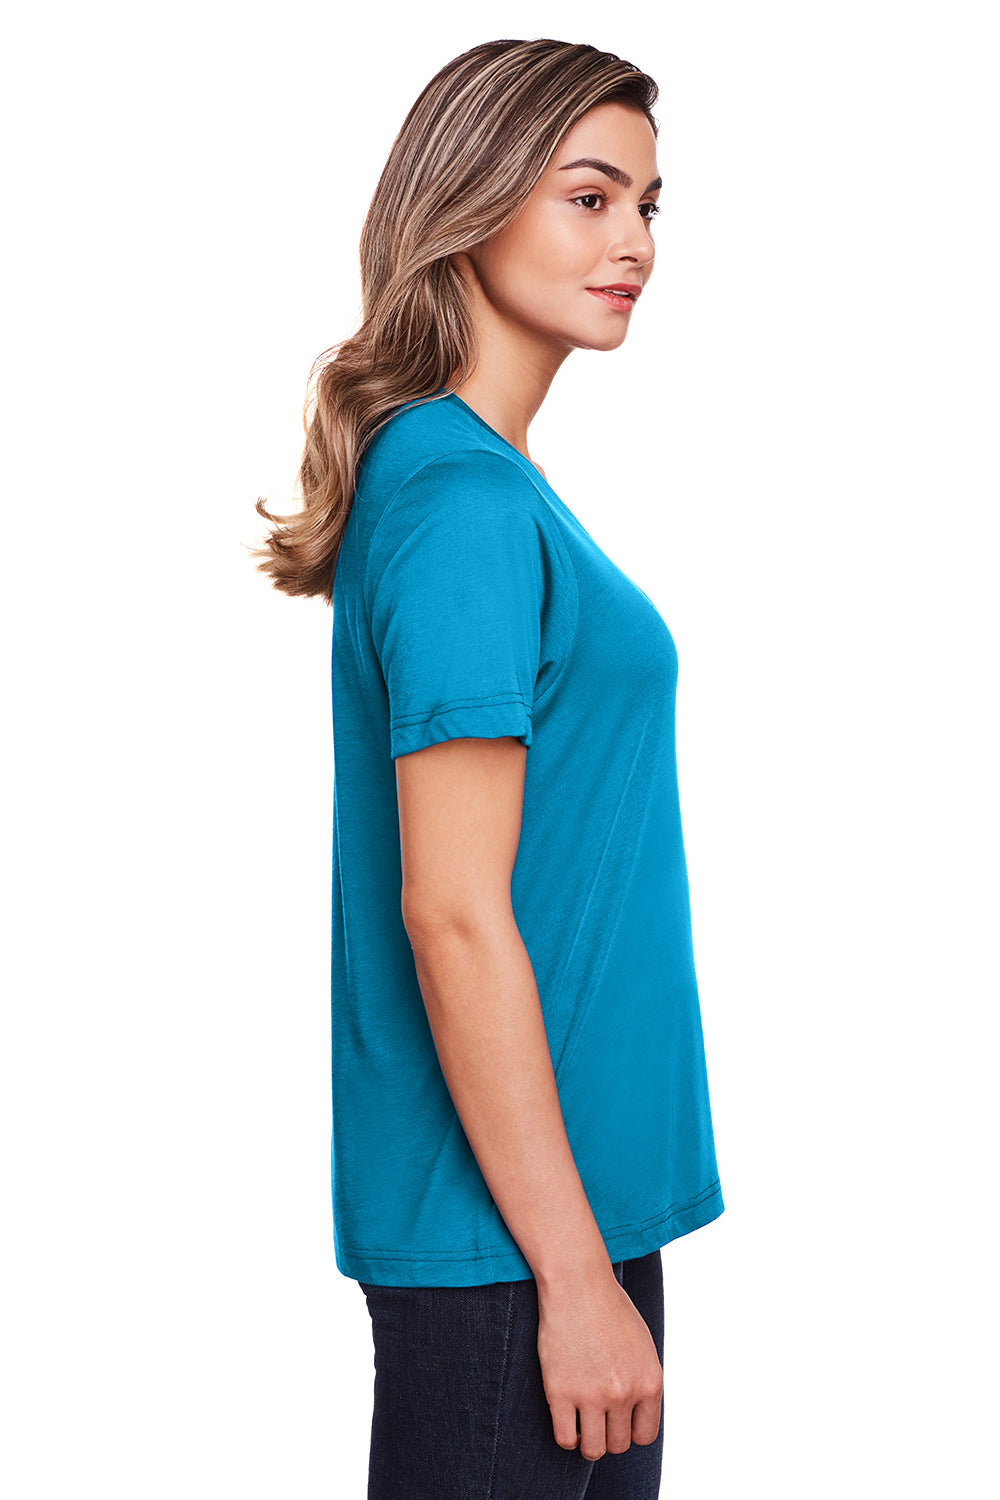 Core 365 CE111W Womens Fusion ChromaSoft Performance Moisture Wicking Short Sleeve Scoop Neck T-Shirt Electric Blue Side